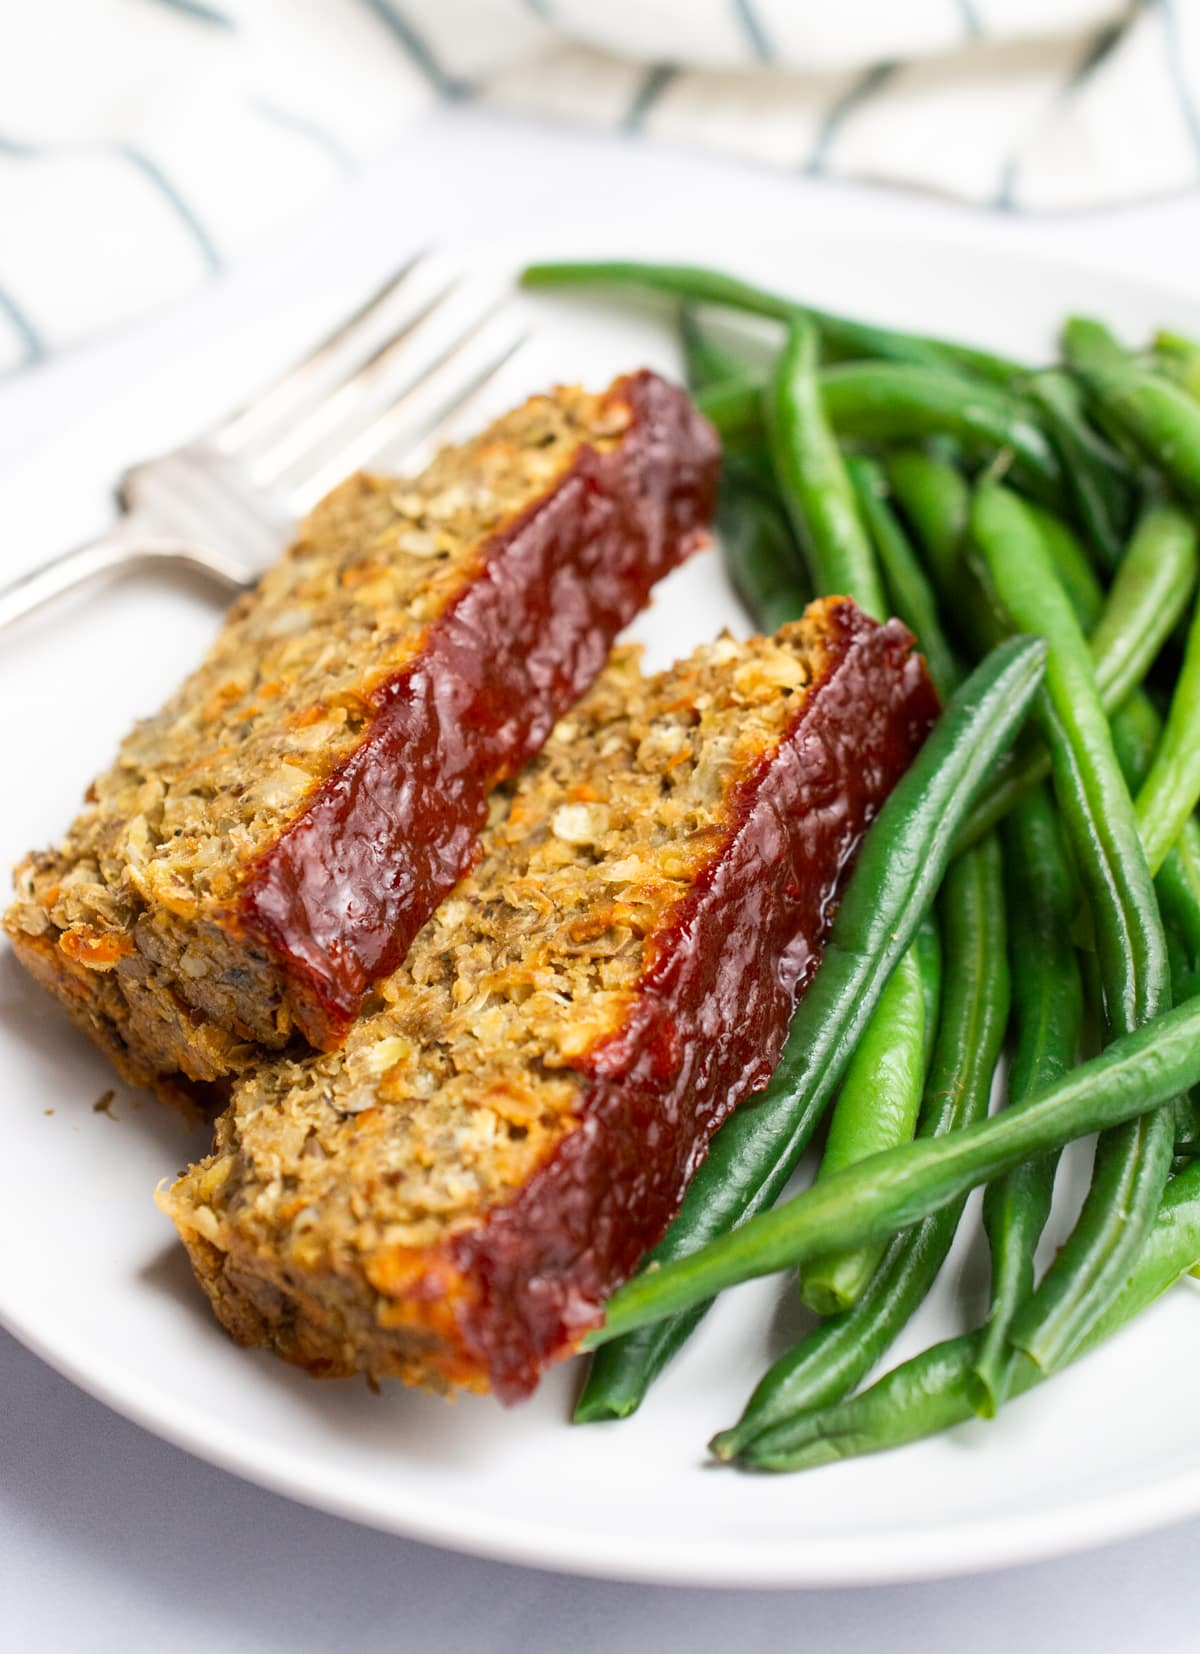 2 slices of lentil loaf topped with ketchup glaze and served with green beans.